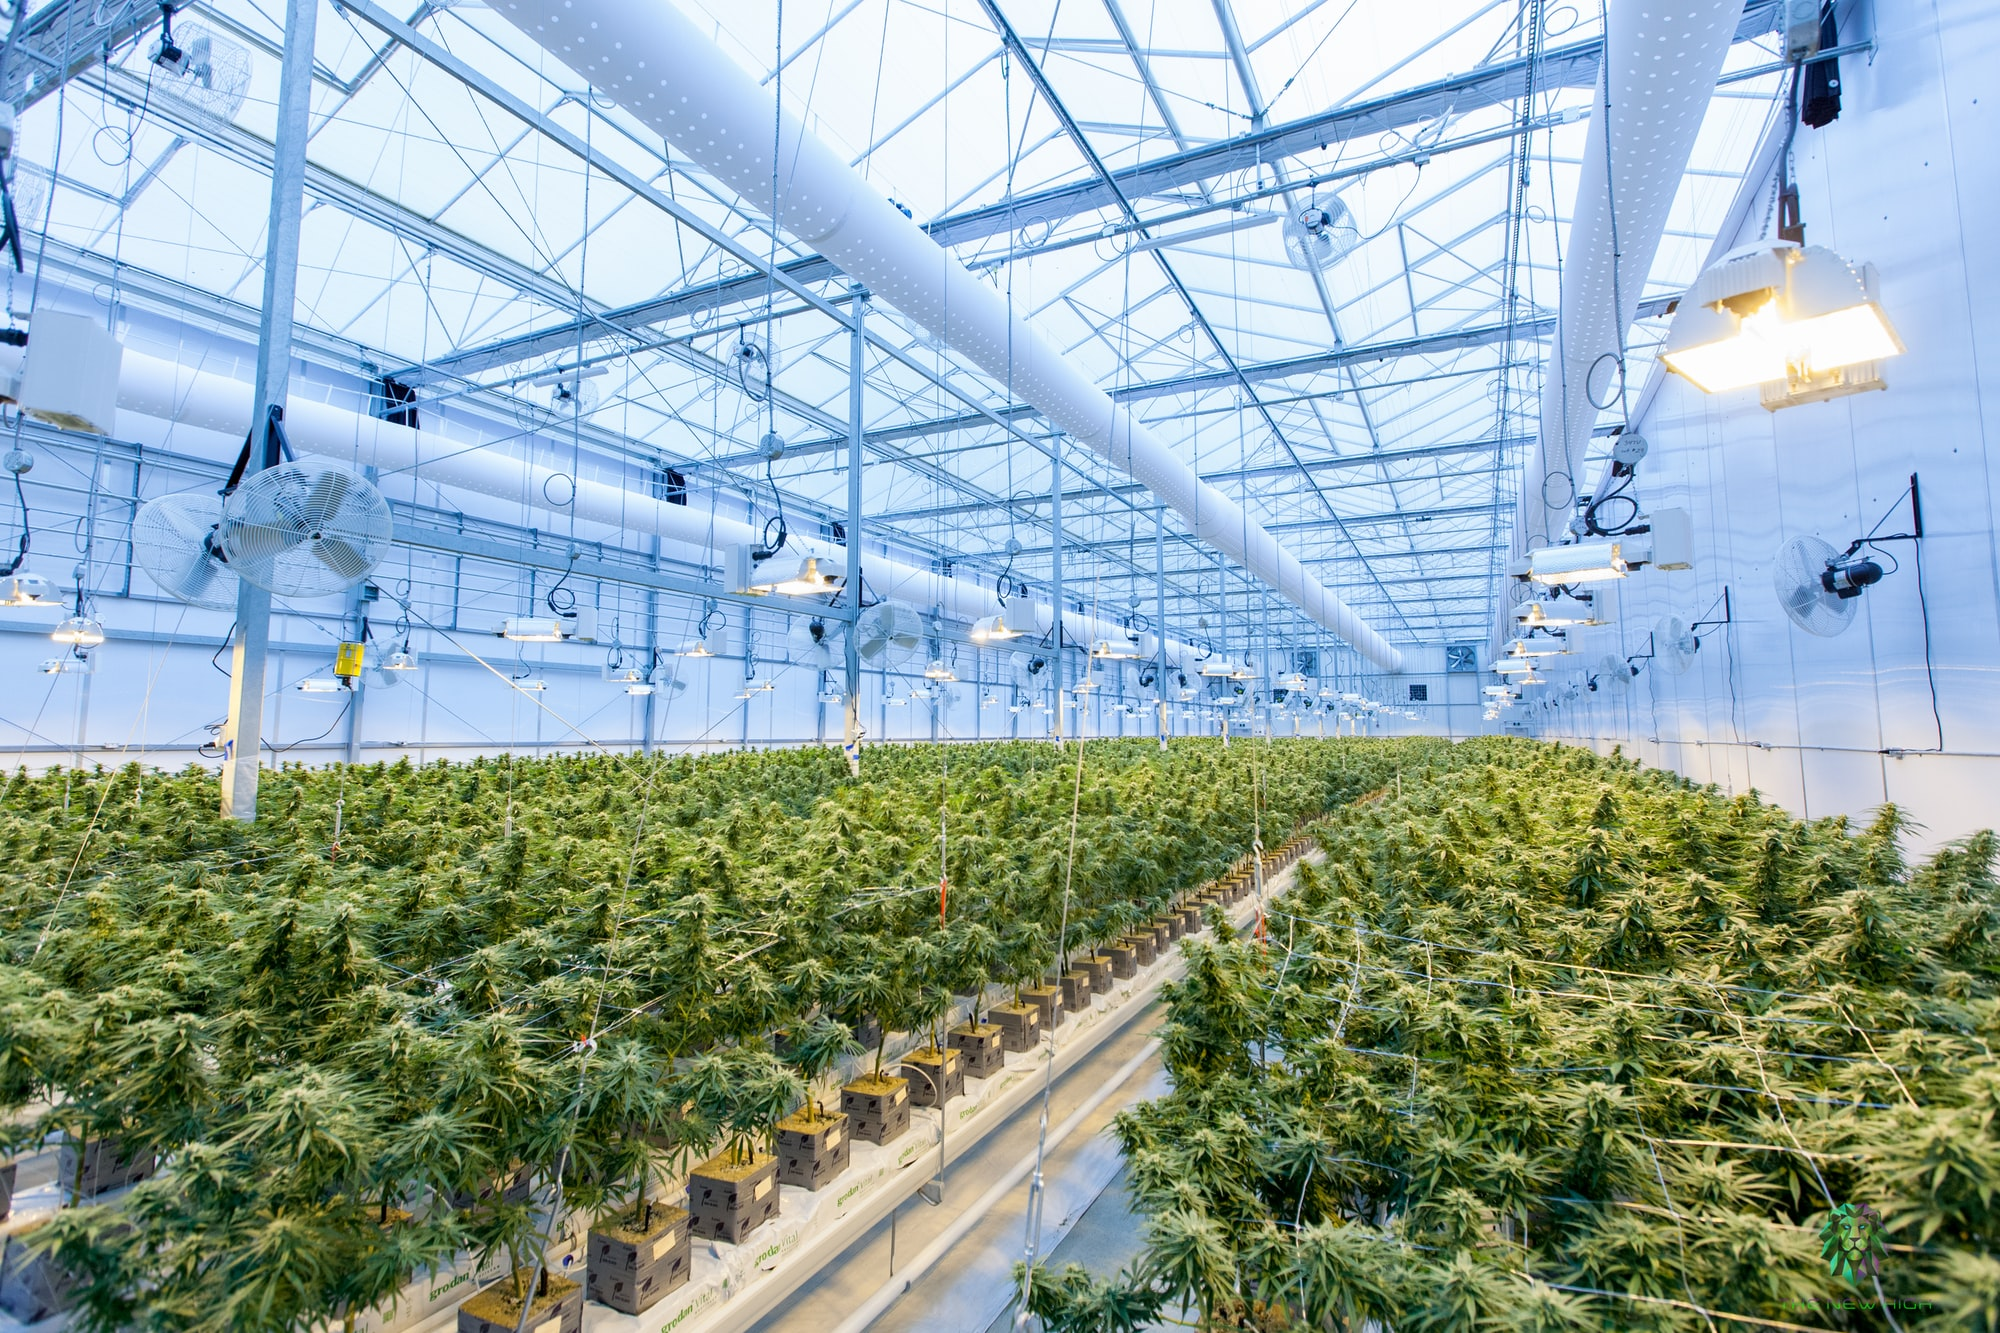 Global enterprise Bayer partners with Prospera to bring greenhouse growers into the age of AI